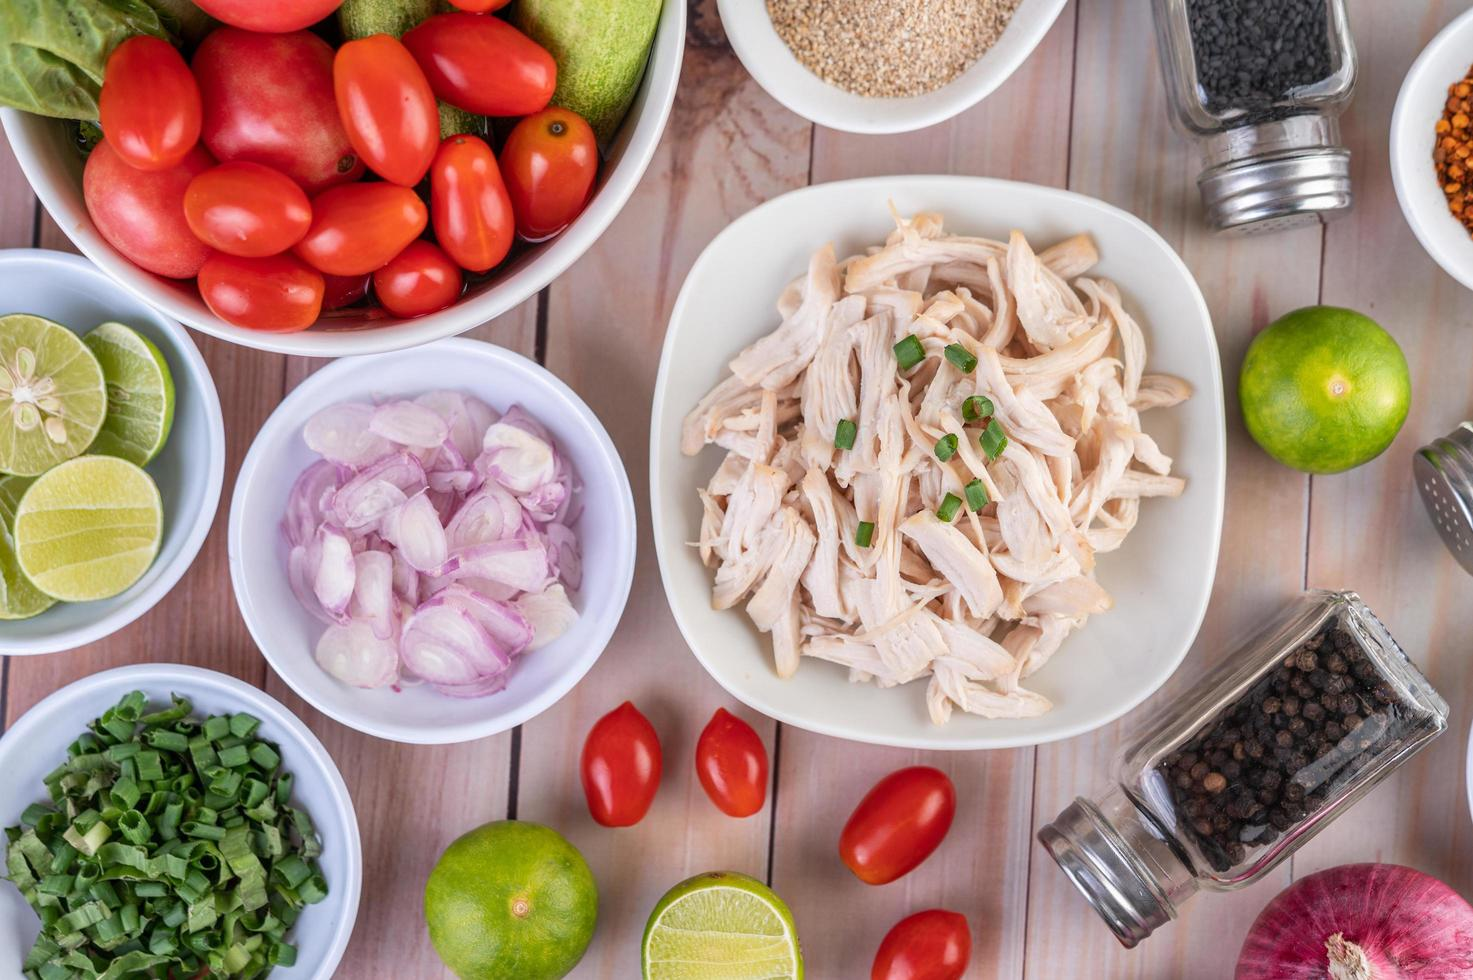 Boiled chicken pieces with vegetables and spices on a wooden table photo